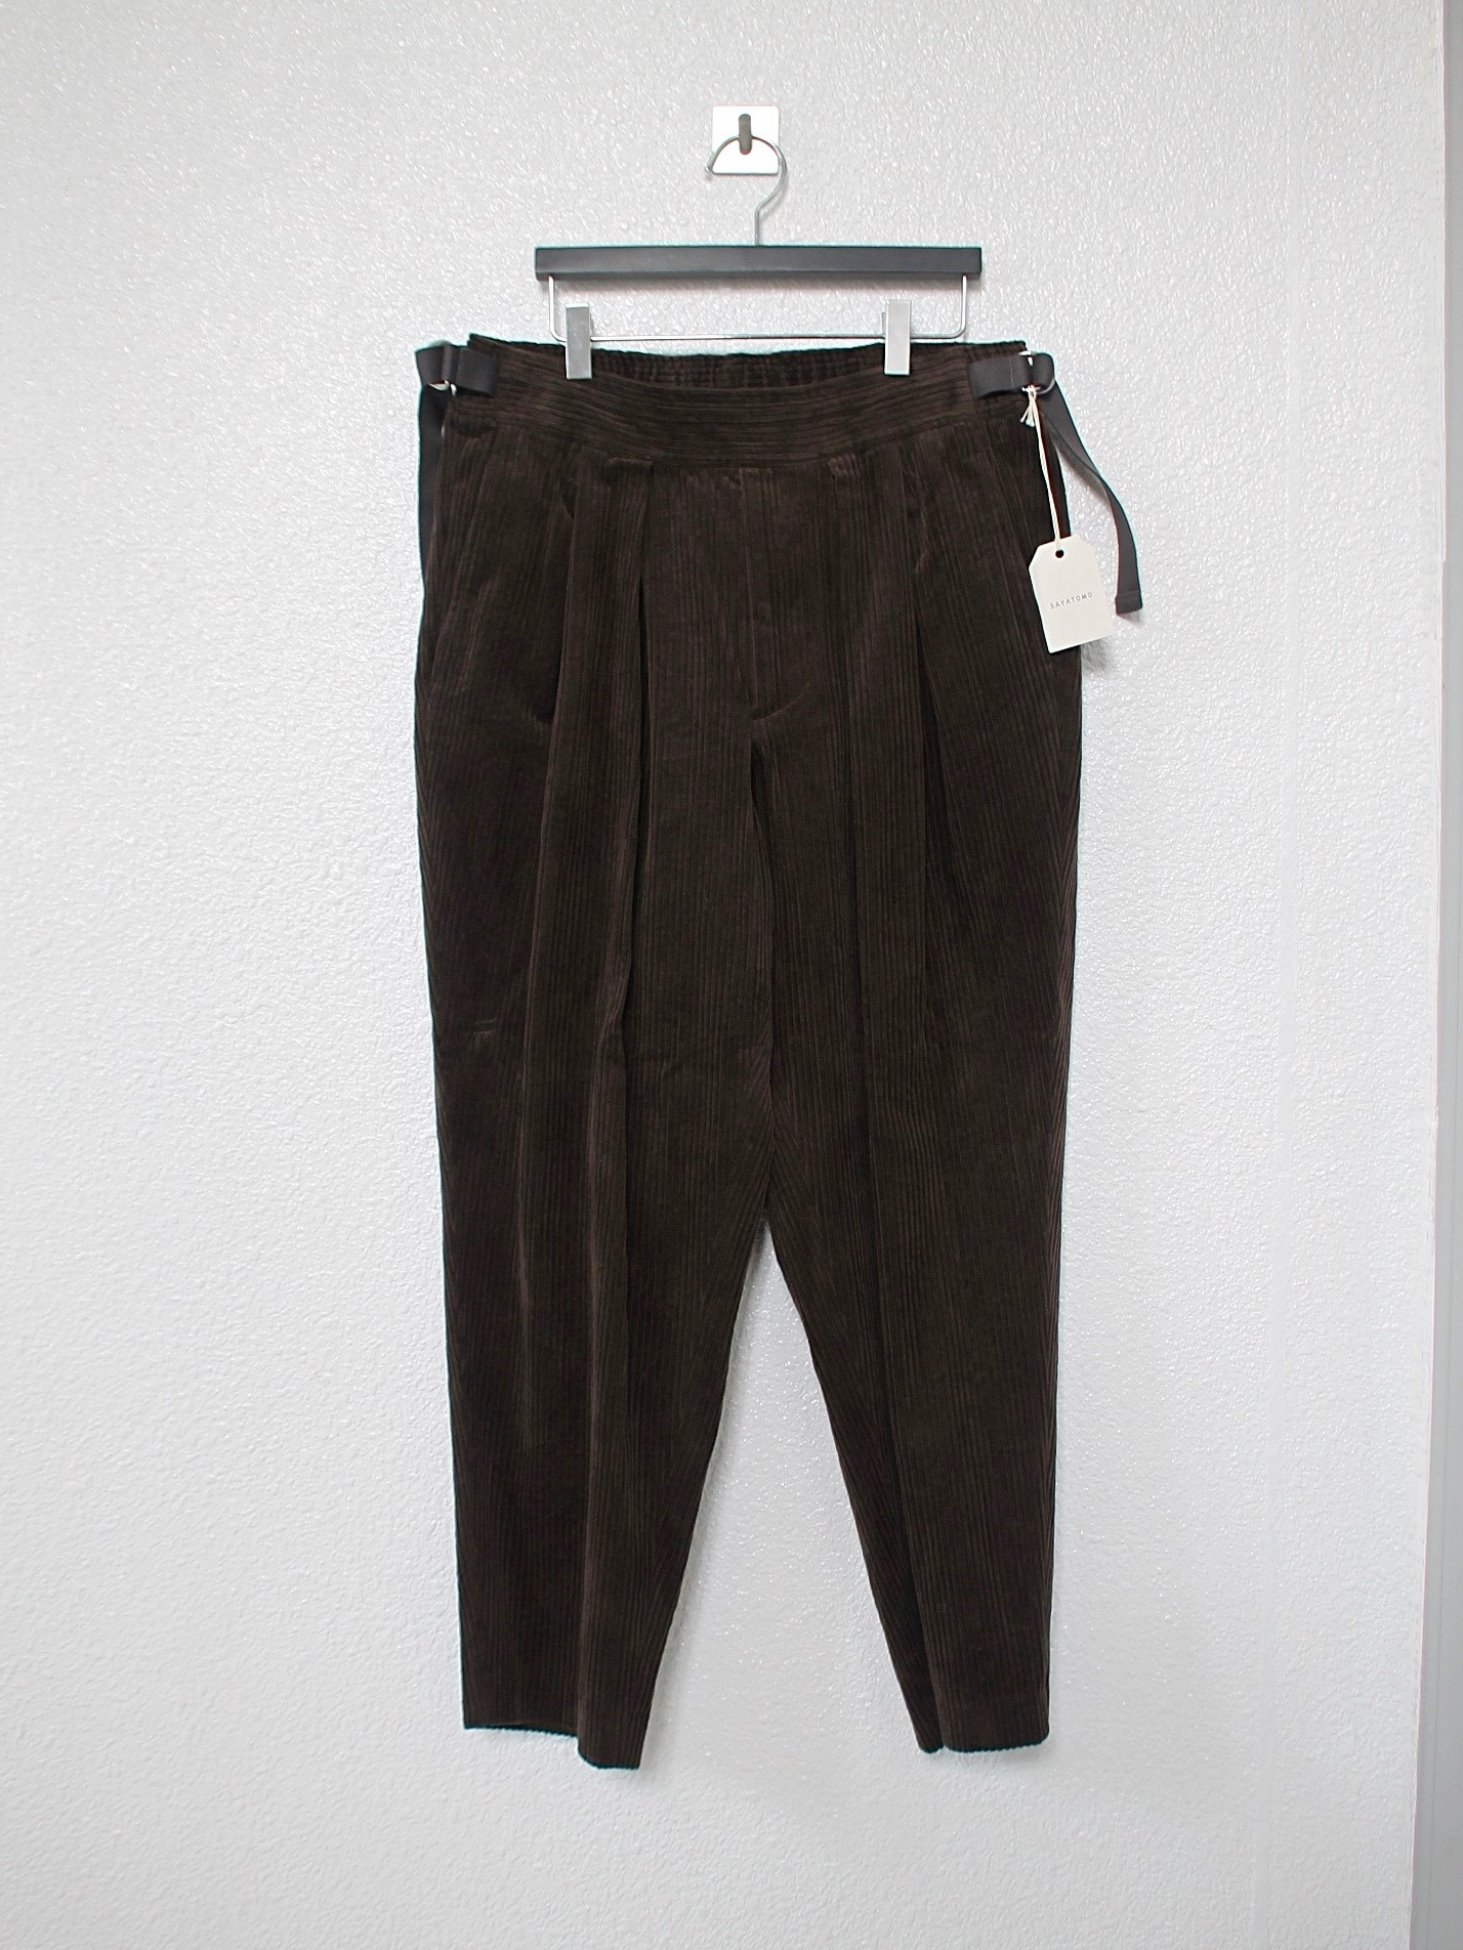 [SAYATOMO] Karusan Corduroy Pants - Brown